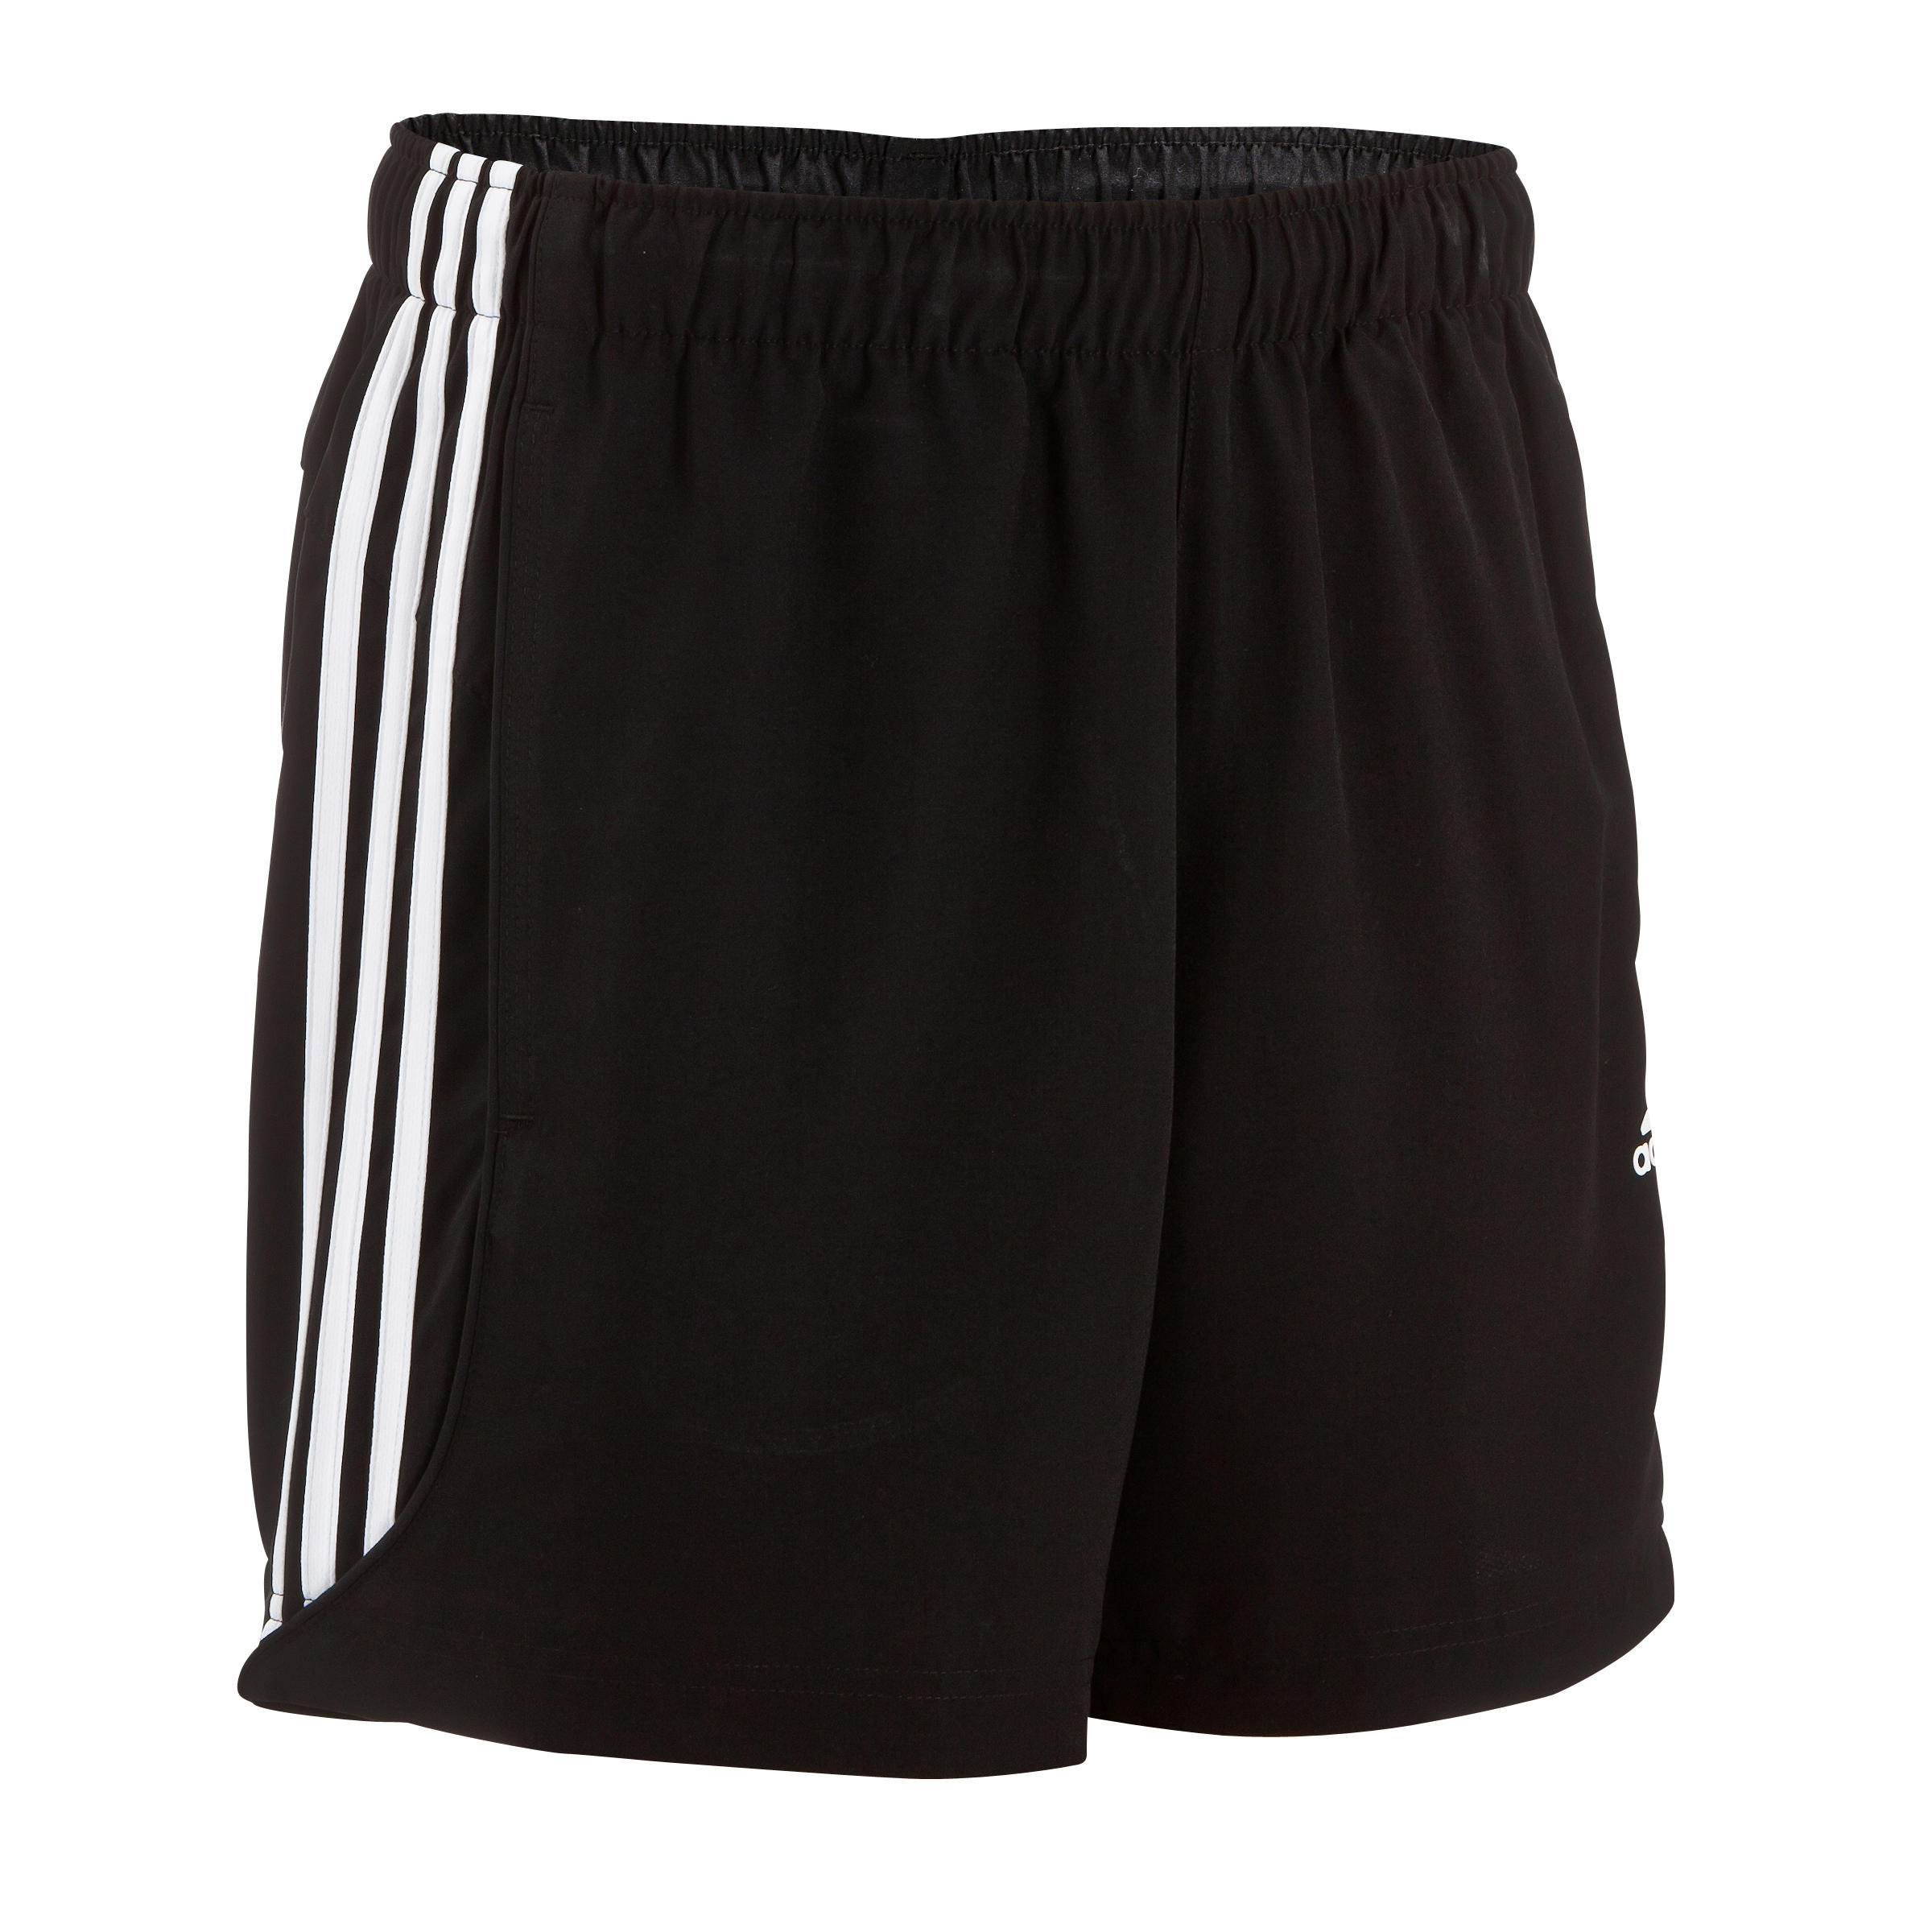 Adidas Essentials 3S Chelsea Herren Trainingsshort XL zwart